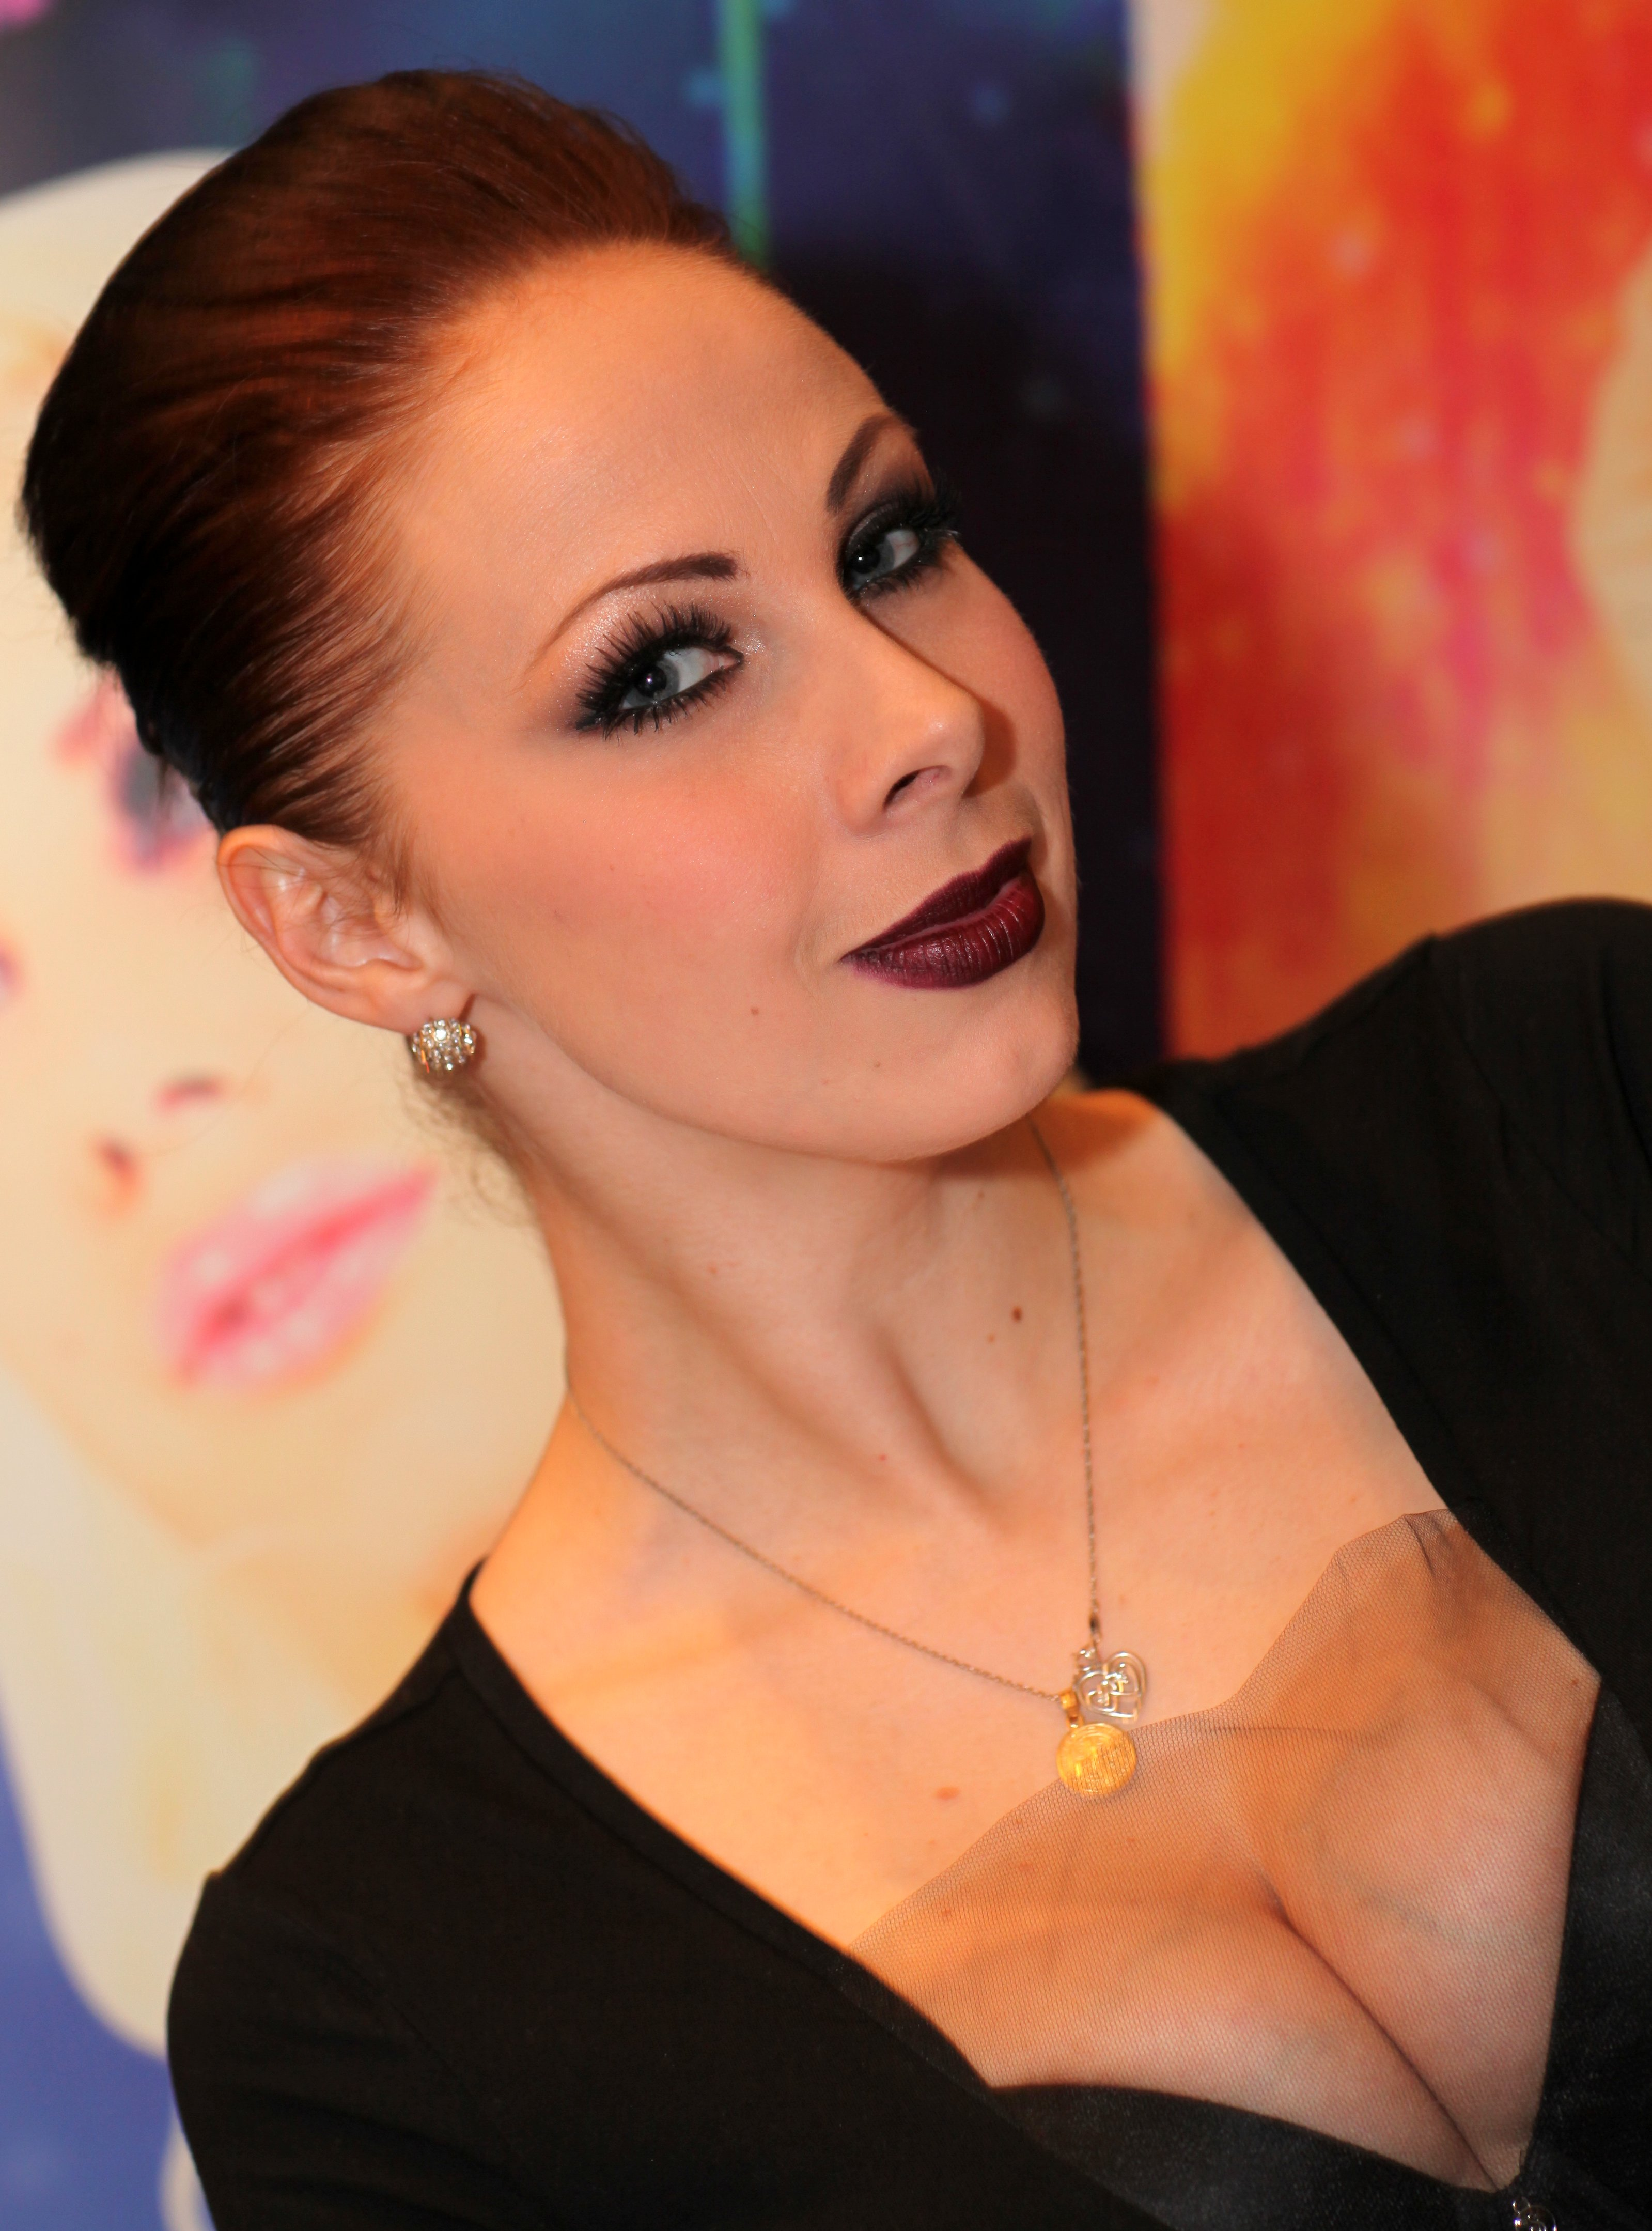 Gianna Michaels Free Download Wallpaper For Mobile